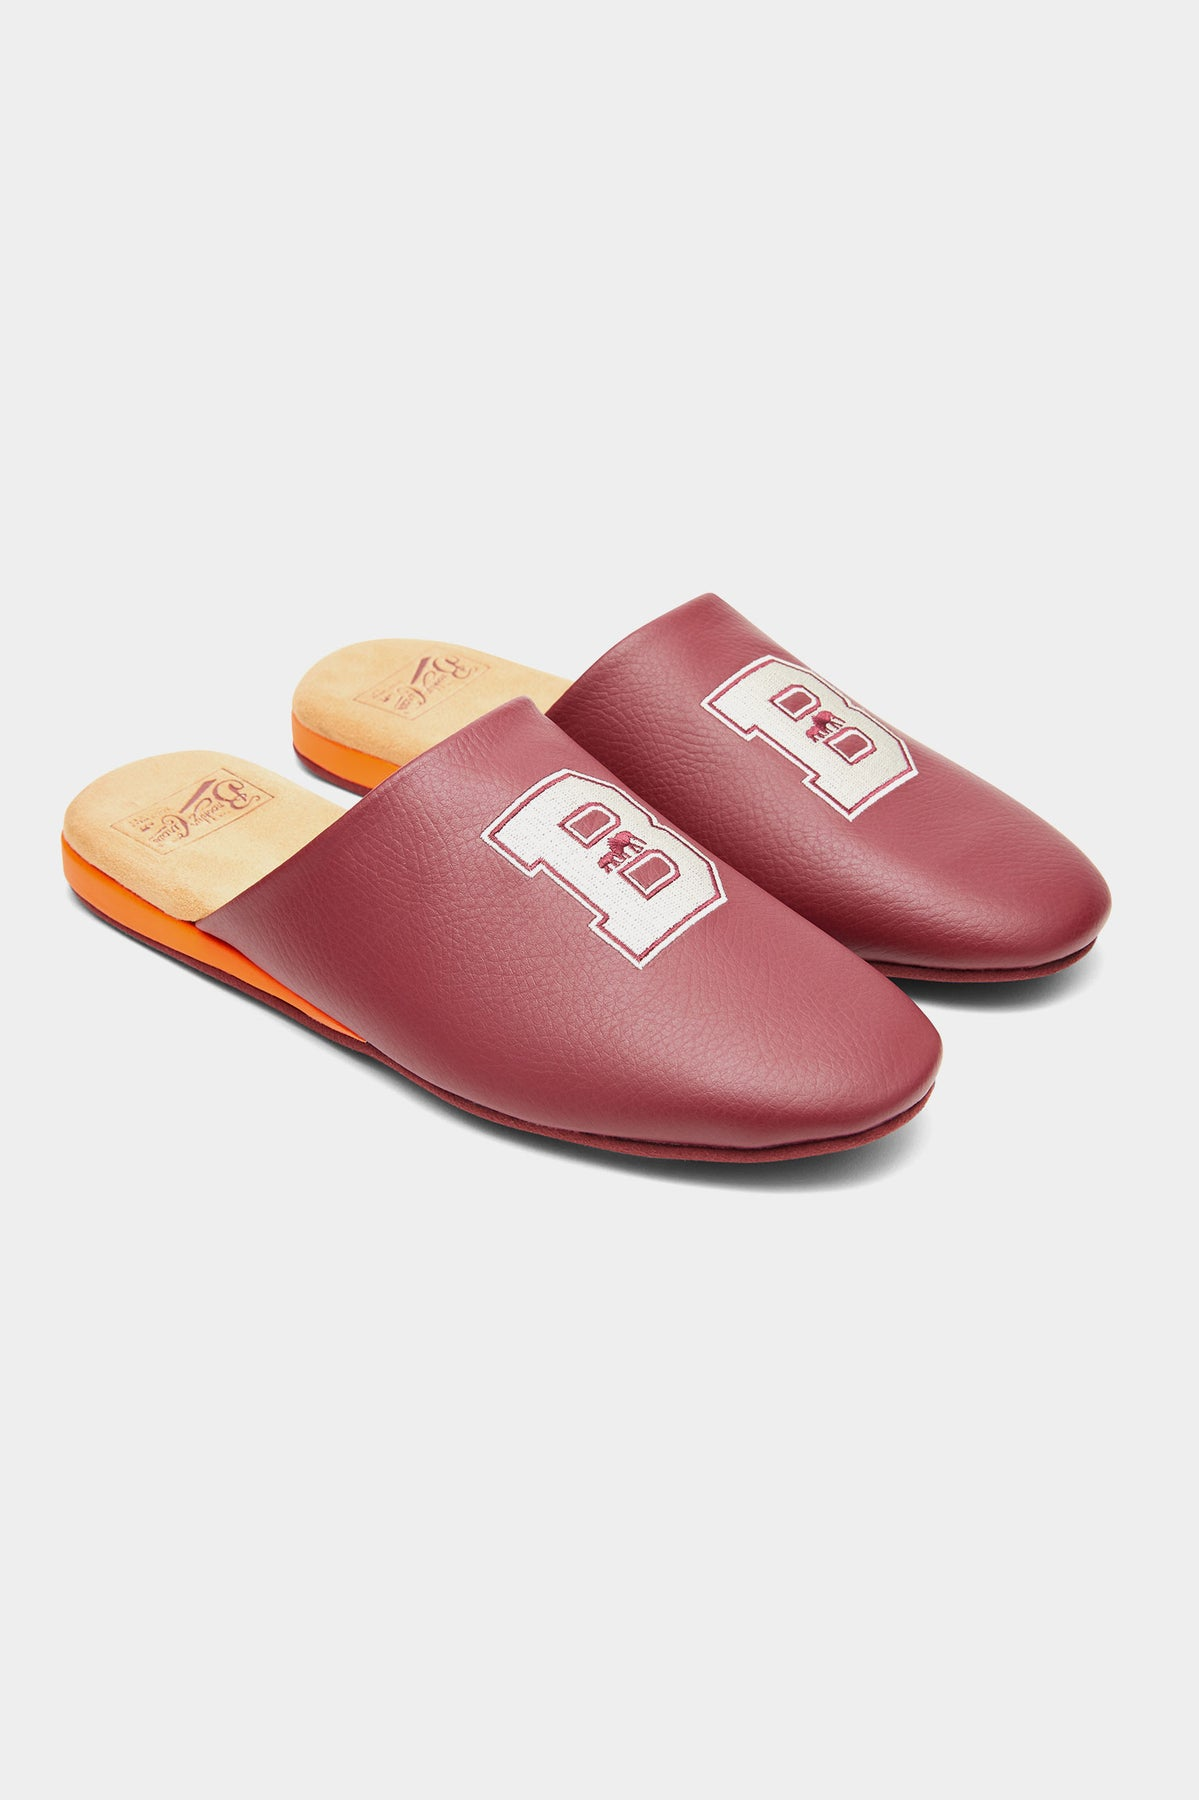 The Brooklyn Circus/BKc Home Slipper